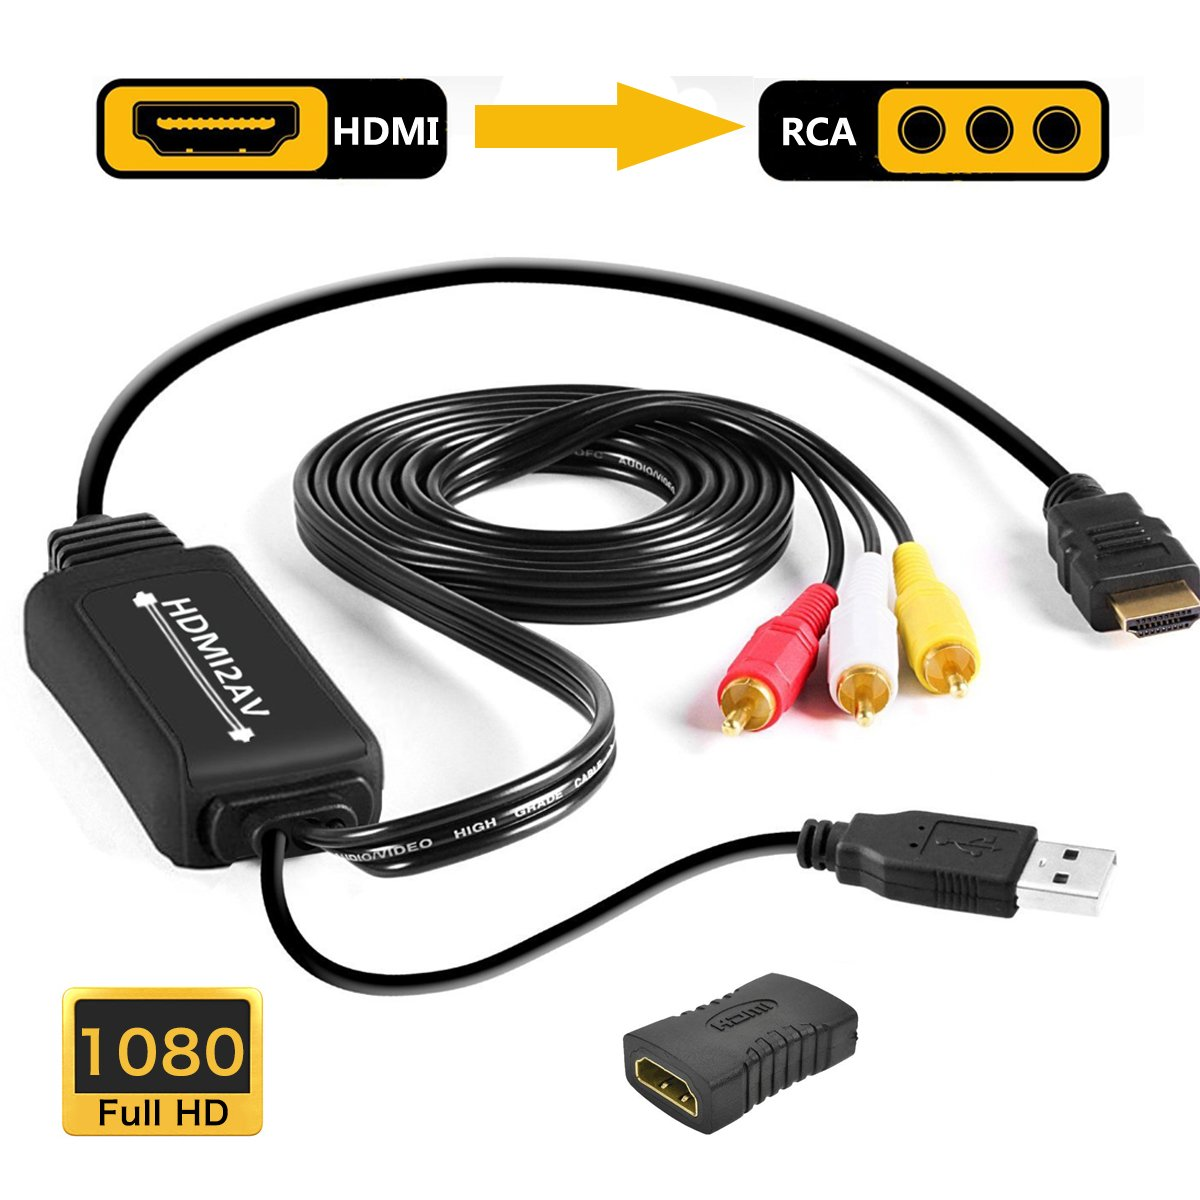 HDMI to RCA Cable, 1080P HDMI to AV CVBS Converter Plus HDMI Female to Female Adapter, with USB Charging for PC/Laptop/HDTV/DVD/PS3/PS4/STB etc by Iseebiz